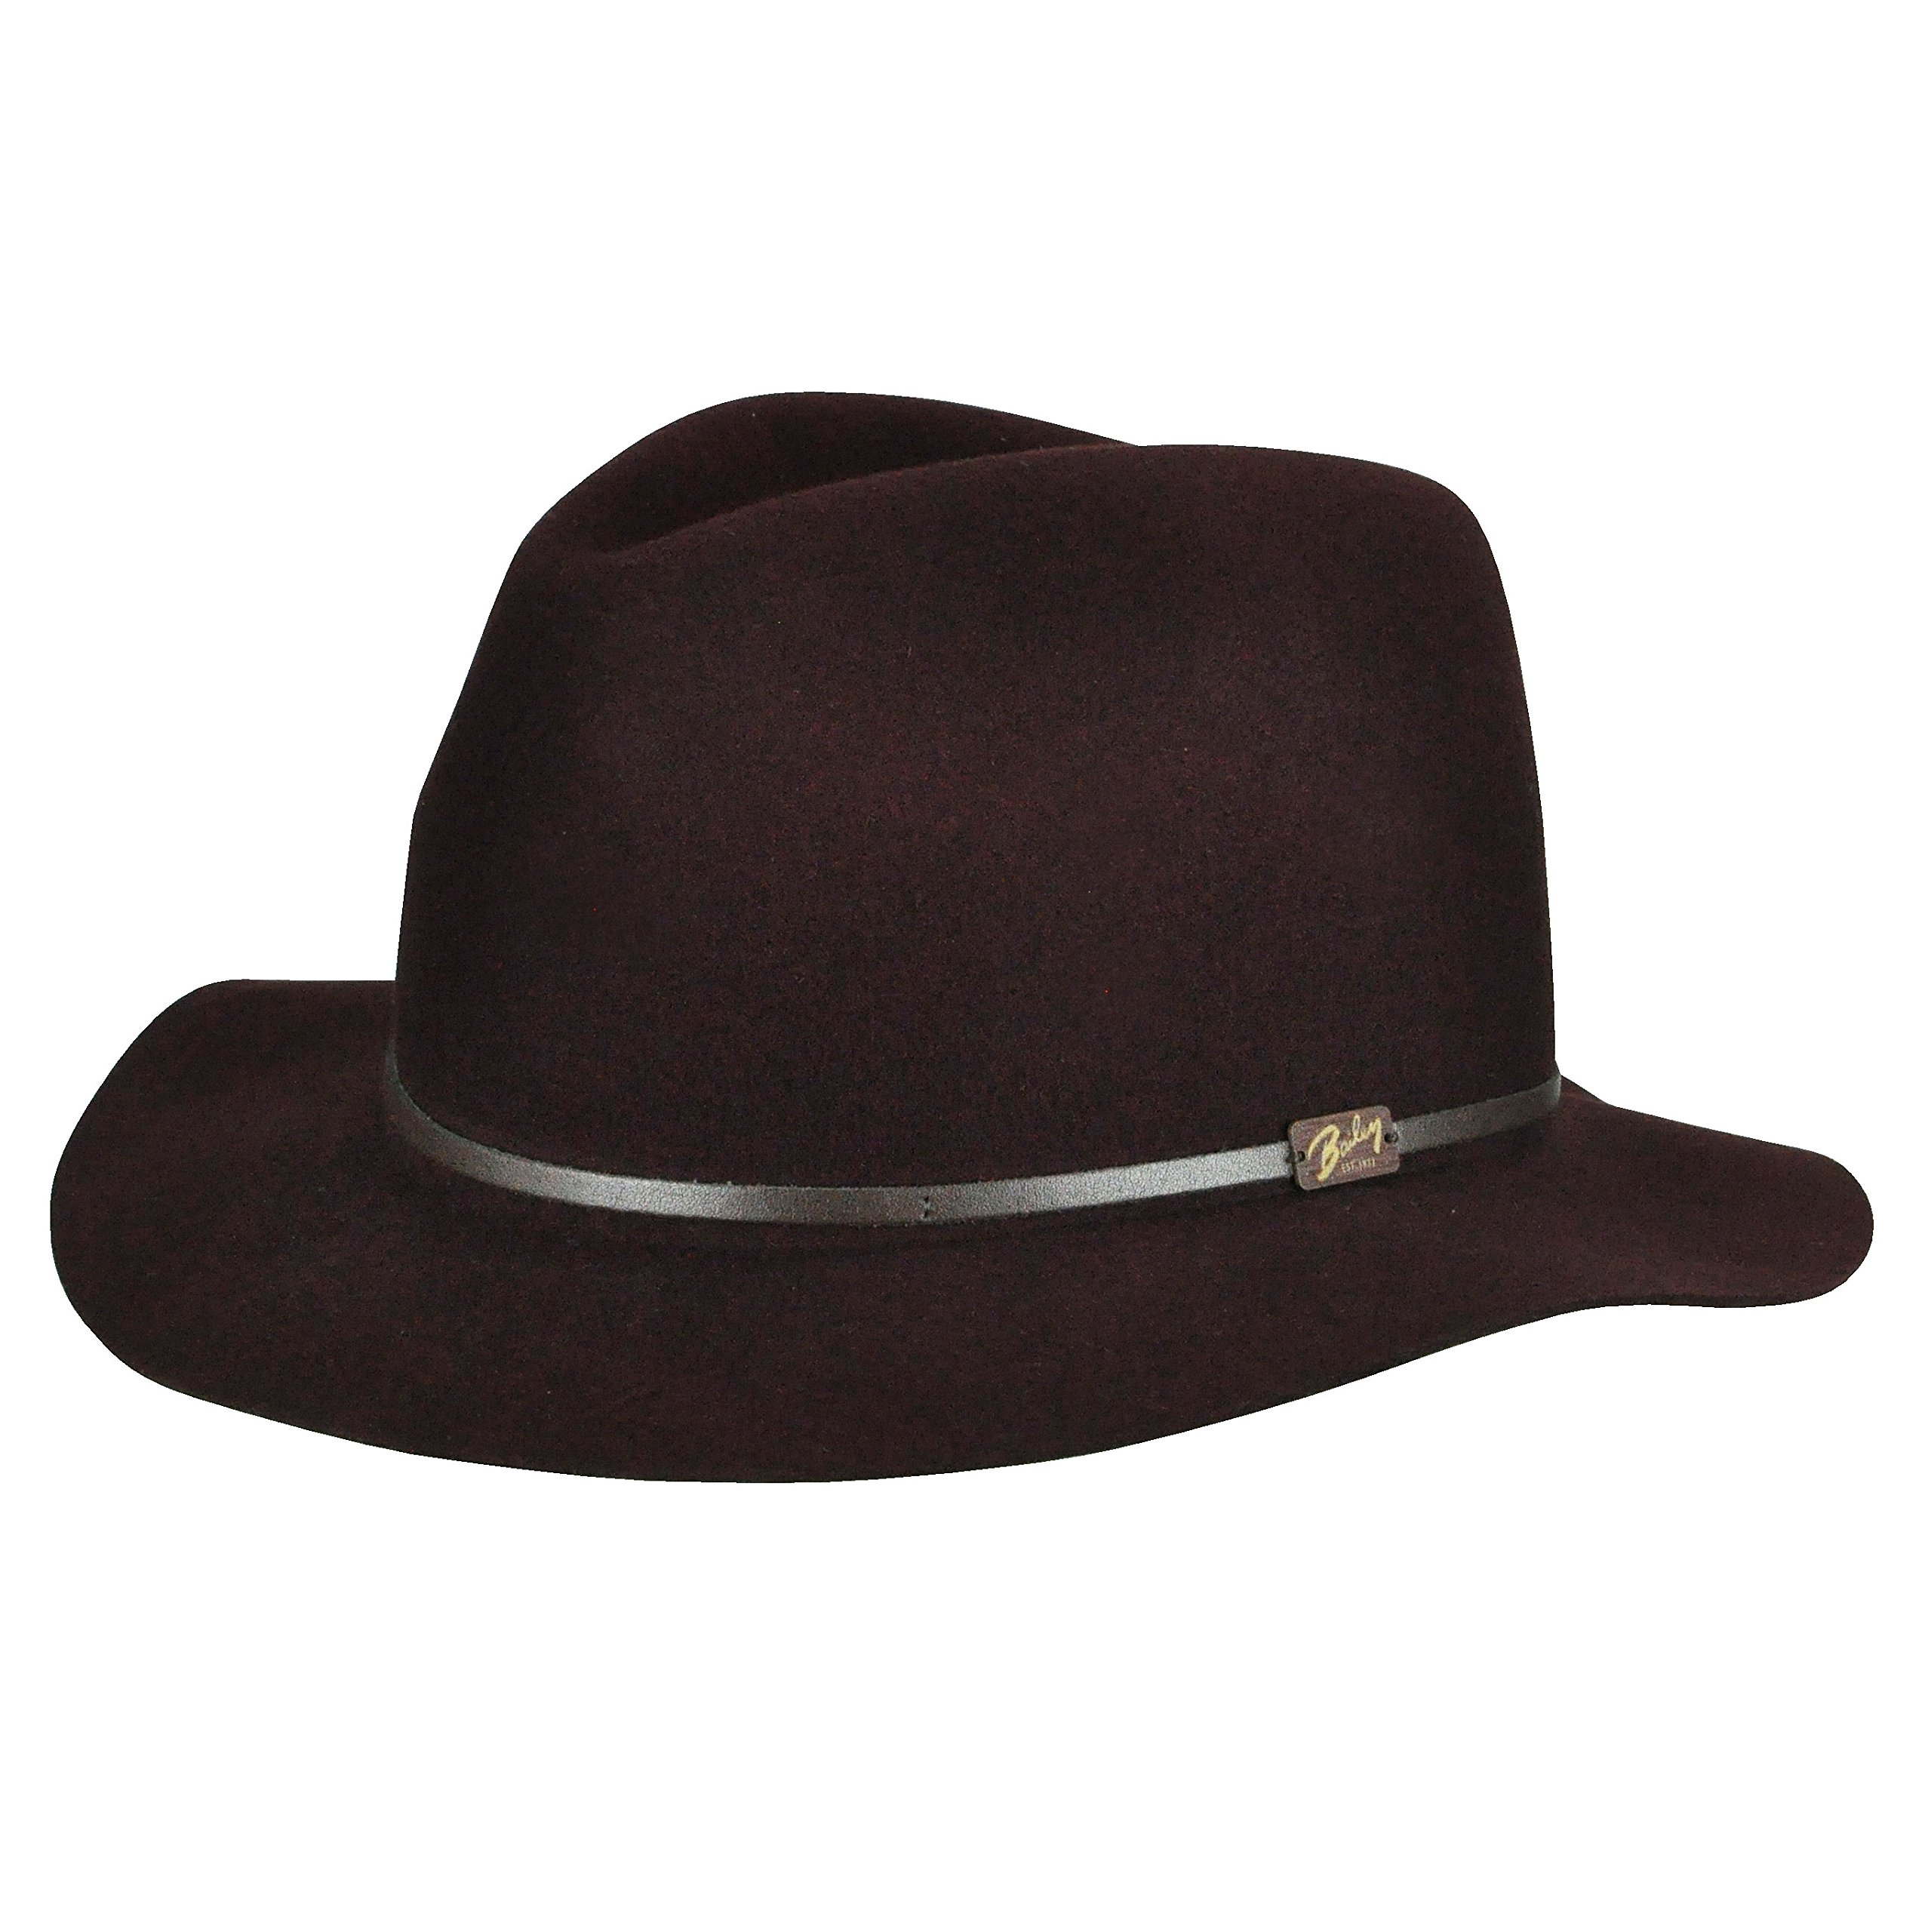 Bailey of Hollywood Jackman Litefelt Wide Brimmed Fedora, Lightweight, Packable and Comes with Travel Dust Bag, Burgundy (Small)